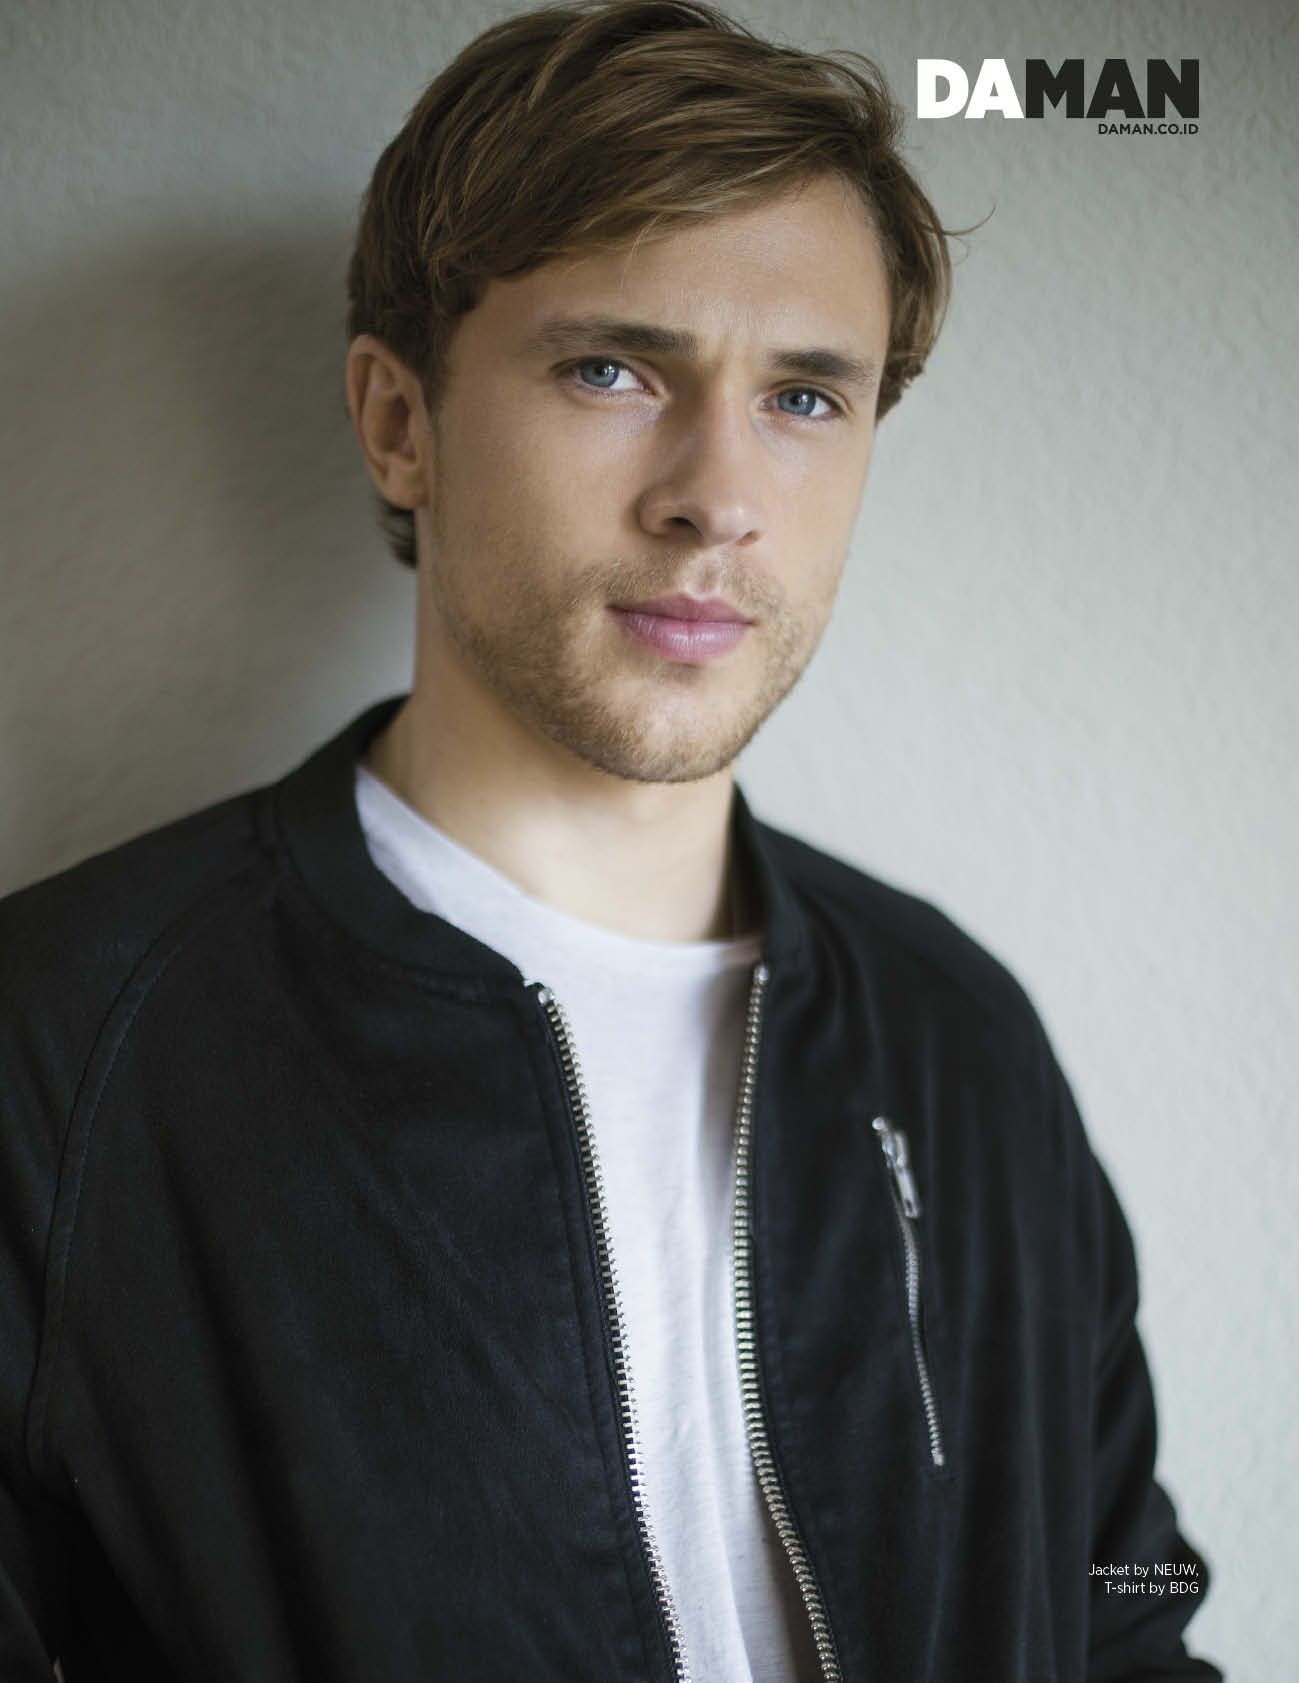 william moseley and georgie henleywilliam moseley gif, william moseley 2016, william moseley tumblr, william moseley вк, william moseley девушка, william moseley gif hunt, william moseley 2015, william moseley vk, william moseley narnia, william moseley возраст, william moseley инстаграм, william moseley tumblr gif, william moseley 2017, william moseley gallery, william moseley and georgie henley, william moseley 2010, william moseley fansite, william moseley site, william moseley autograph, william moseley the silent mountain